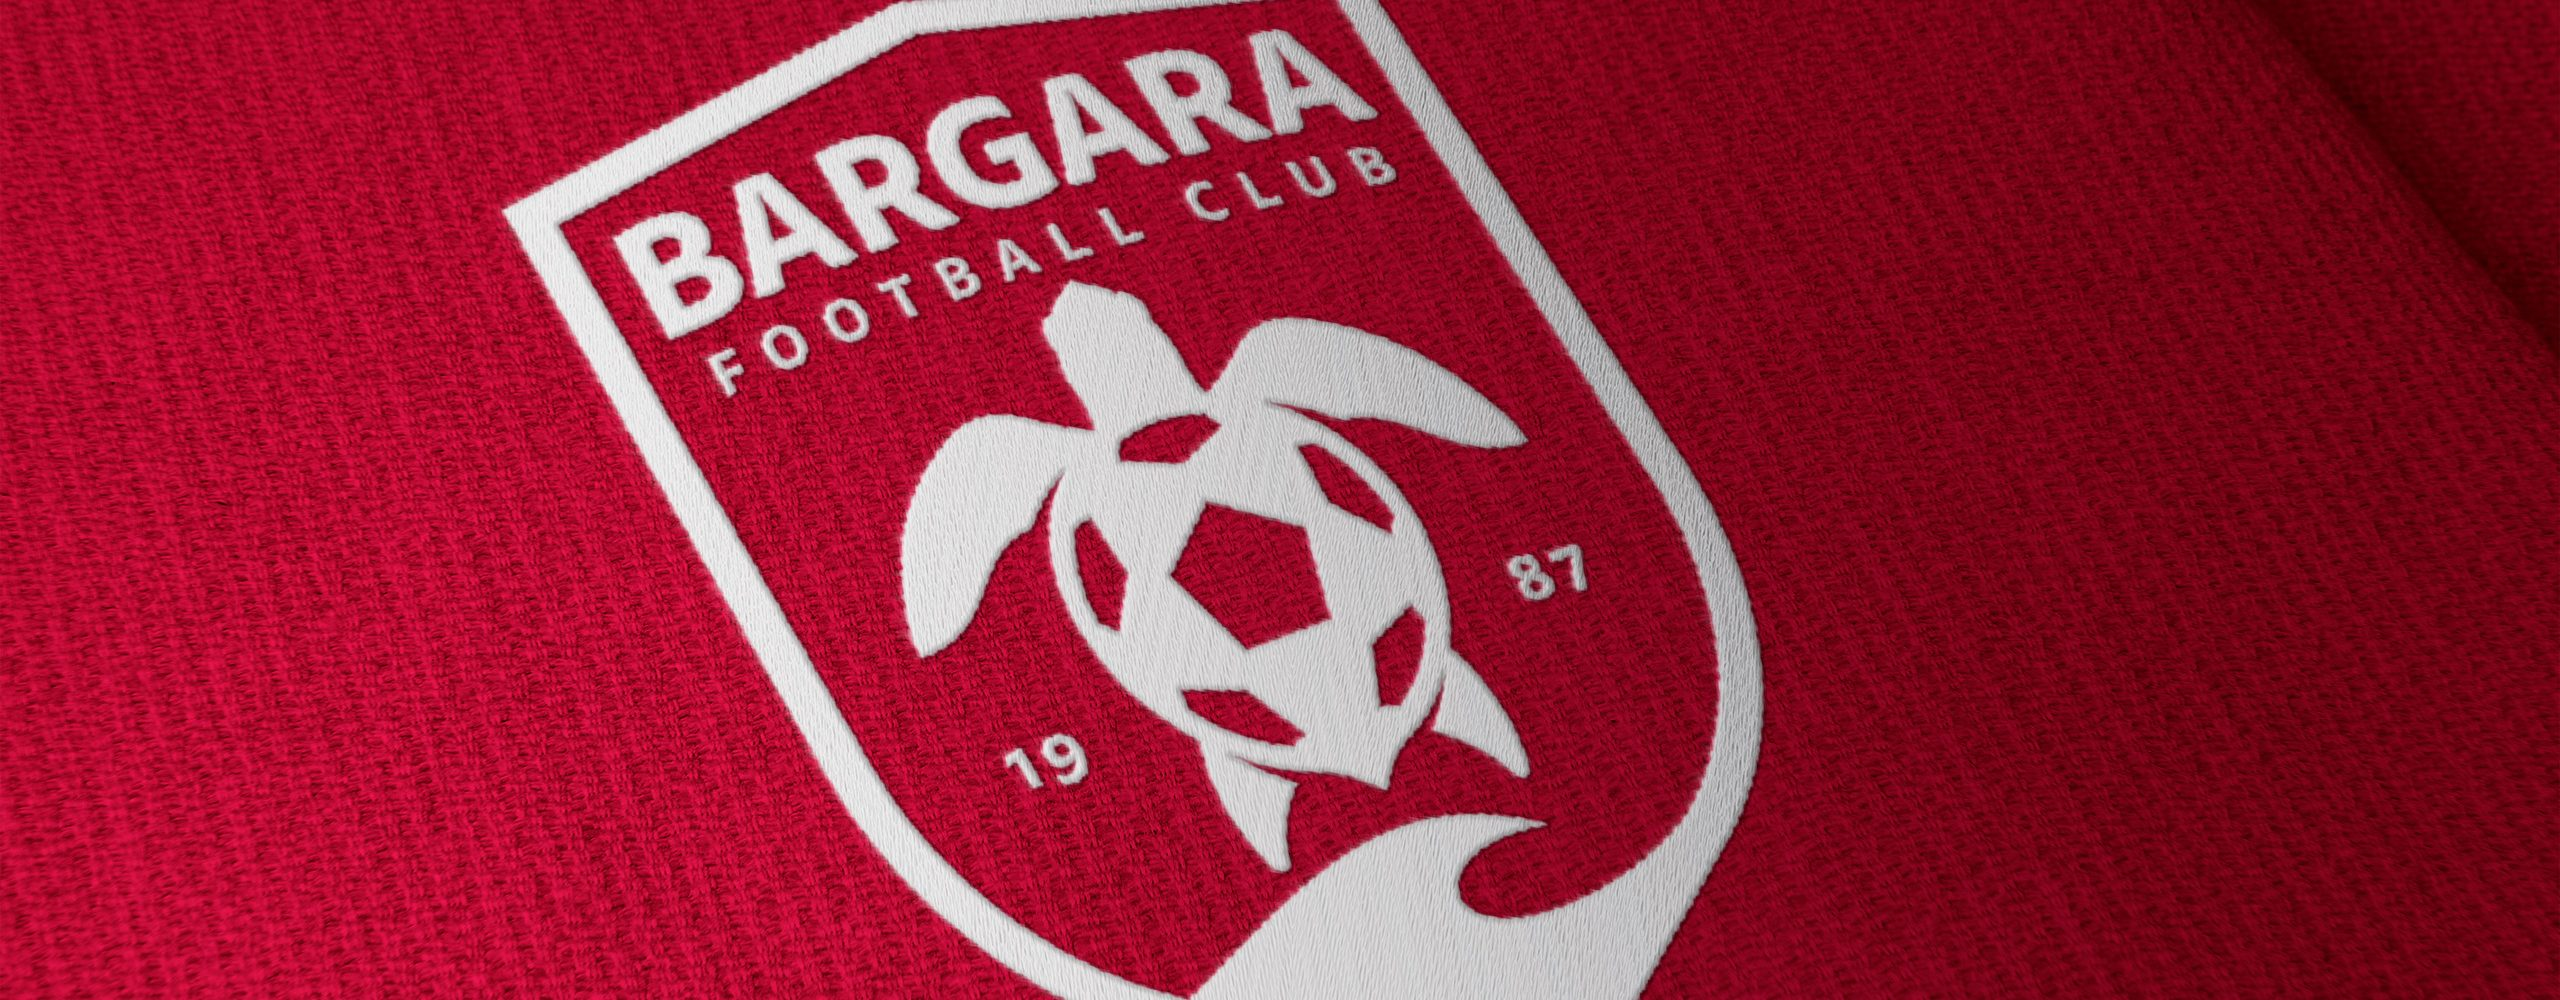 bargarafc-logo-on-fabric